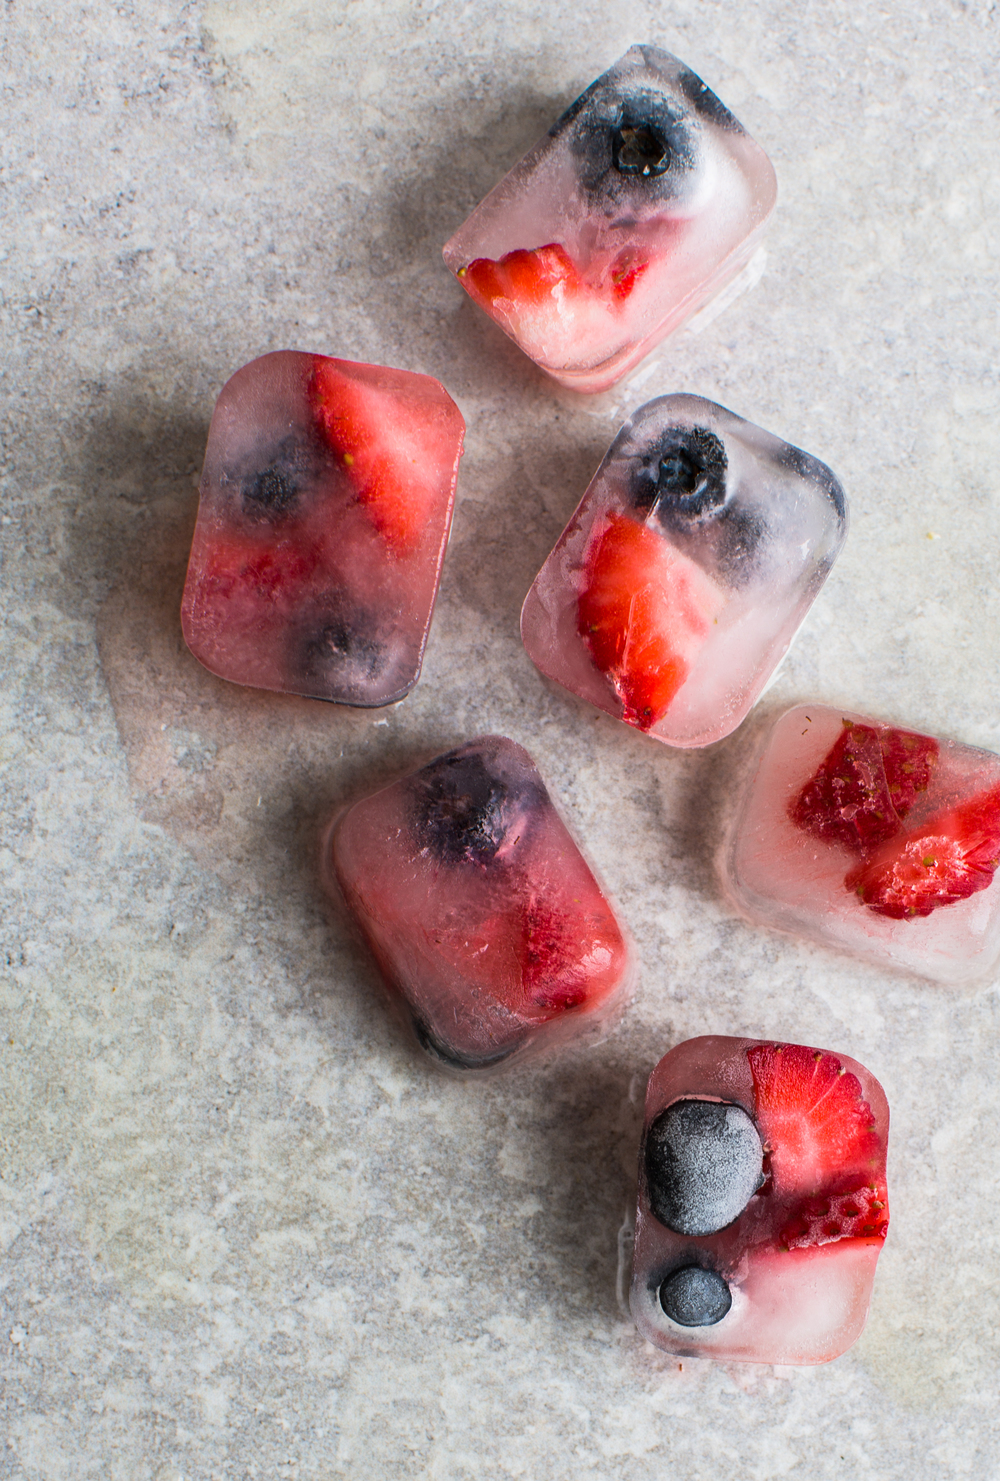 5-Kitchen-Hack-5-Ways-to-Use-Your-Ice-Trays | www.8thandlake.com.jpg